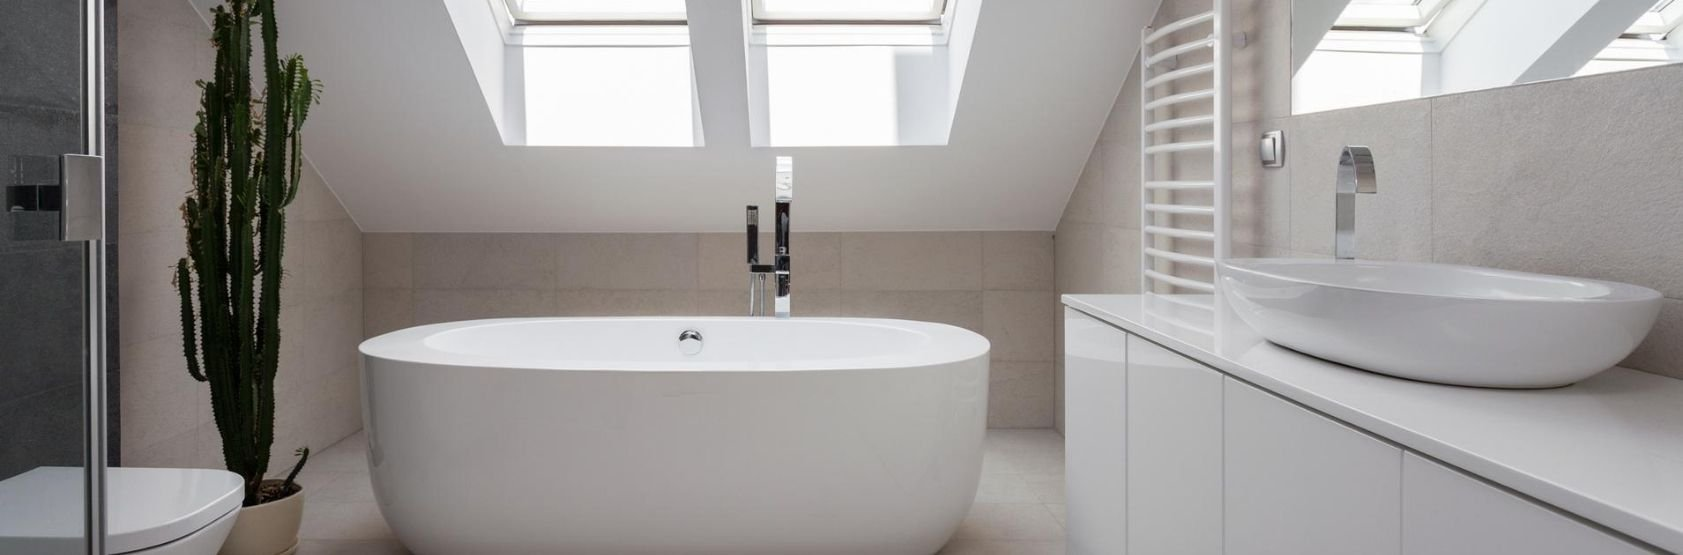 Bathroom-Fitting-Services-Dorset-Hampshire_6